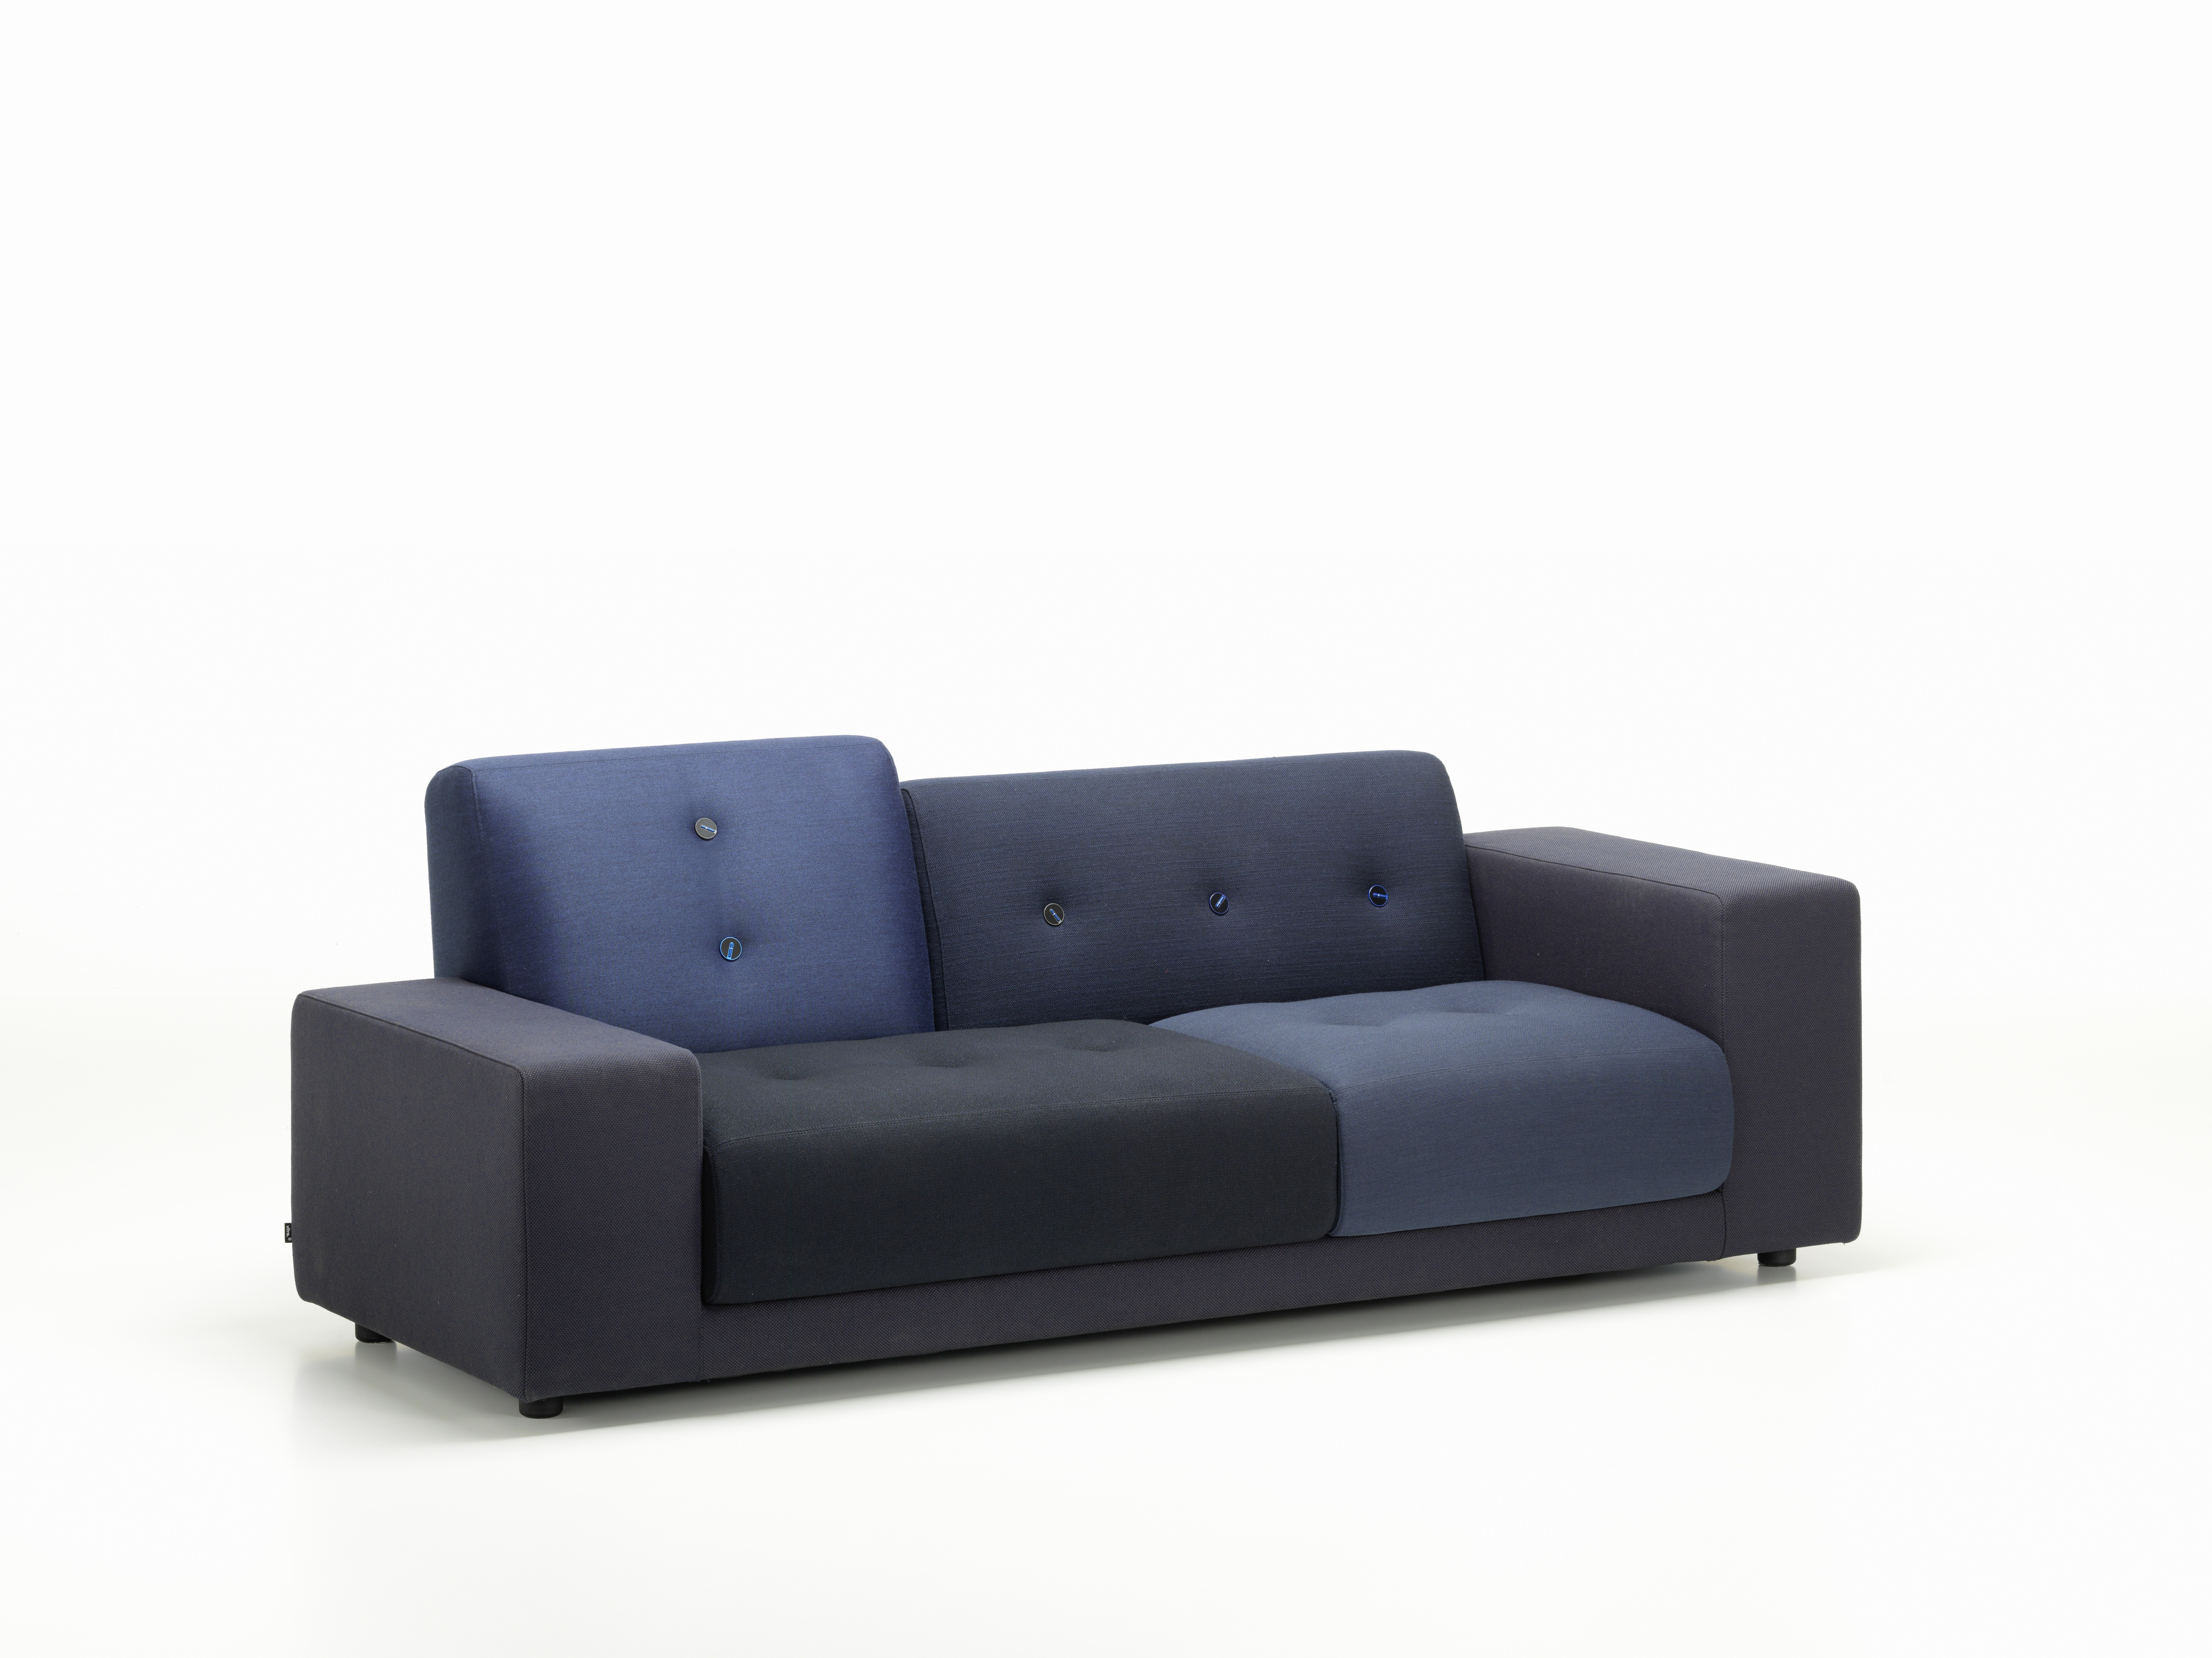 vitra polder compact sofa gr shop canada. Black Bedroom Furniture Sets. Home Design Ideas